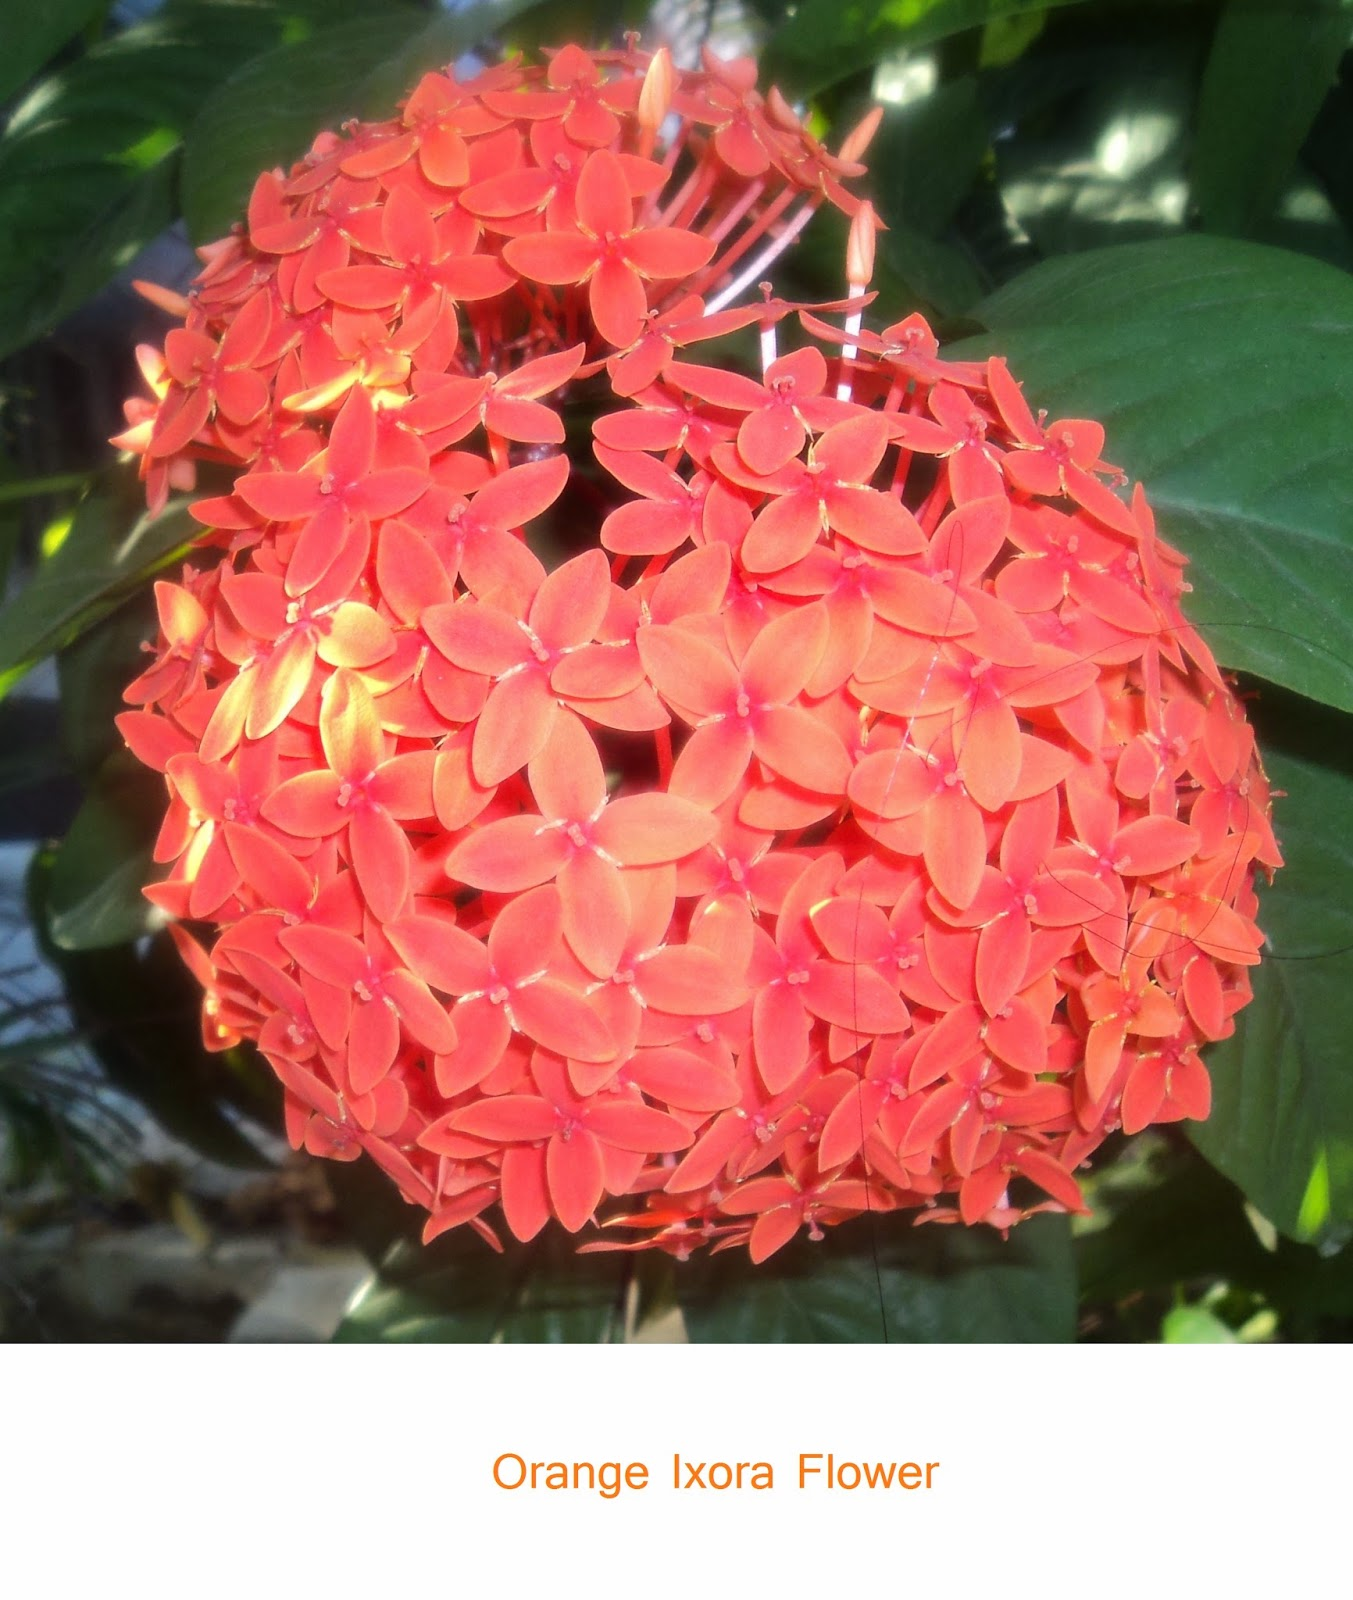 orange ixora flower